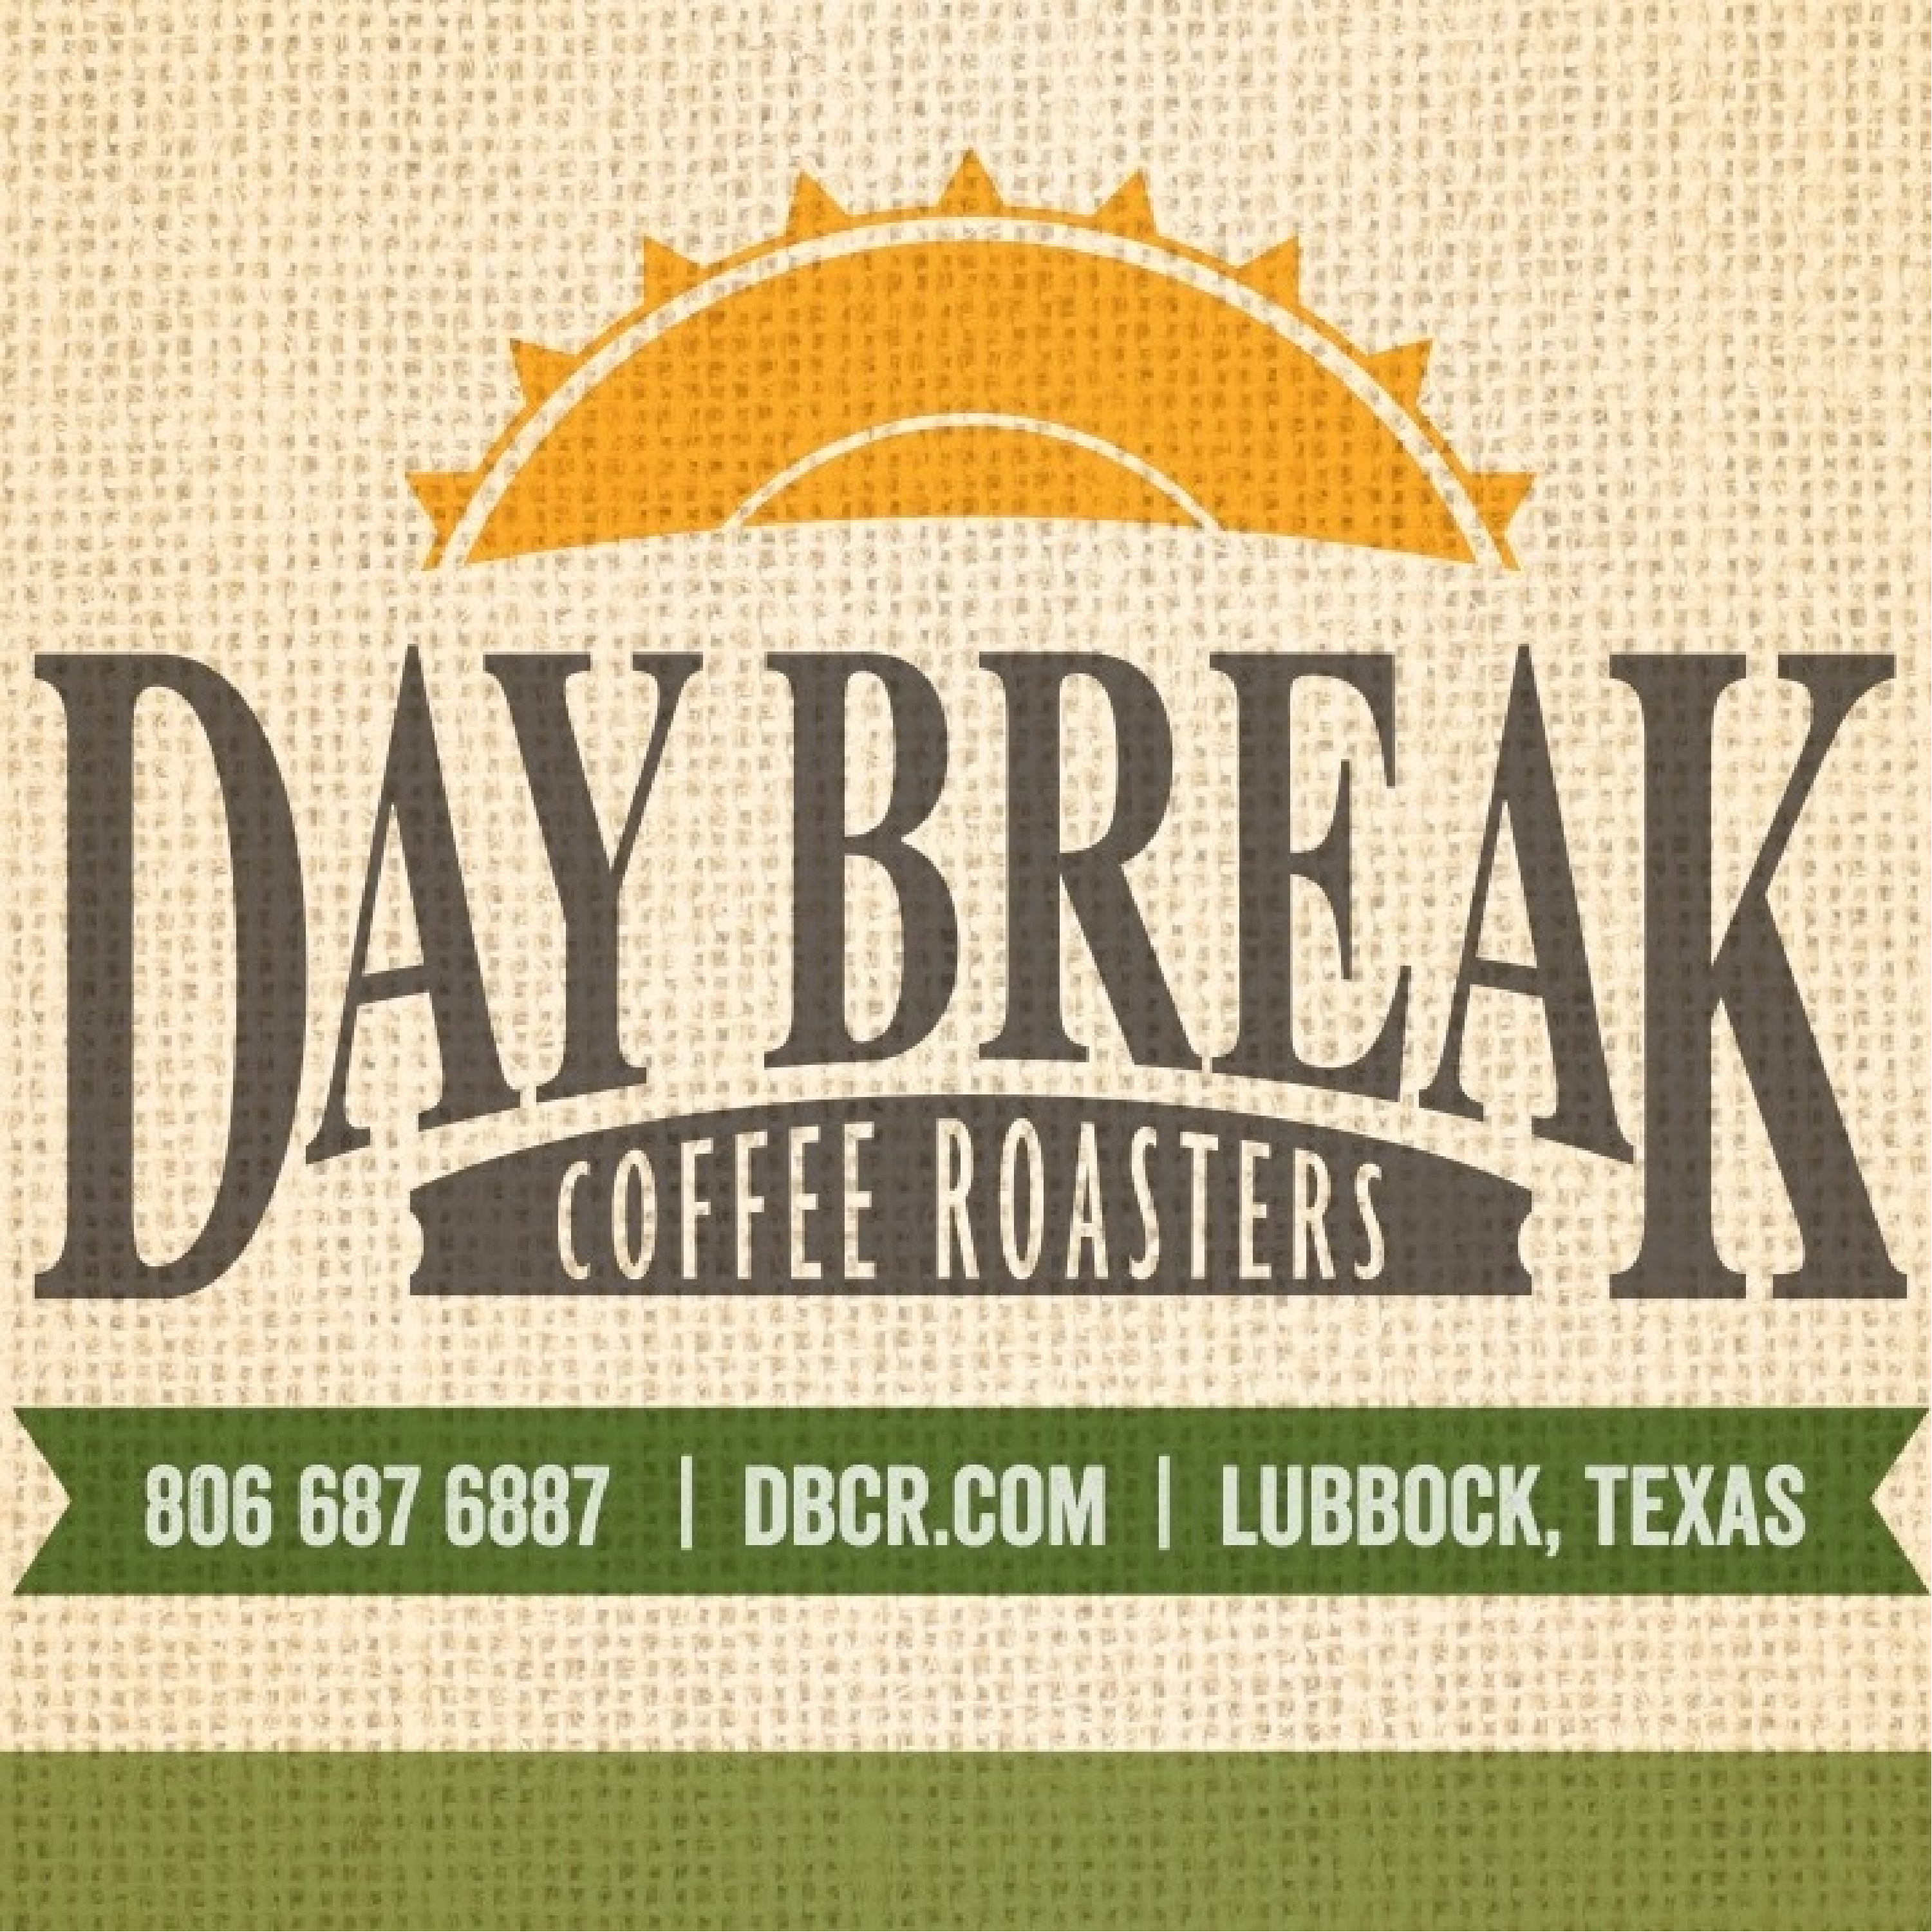 Day Break Coffee Roasters